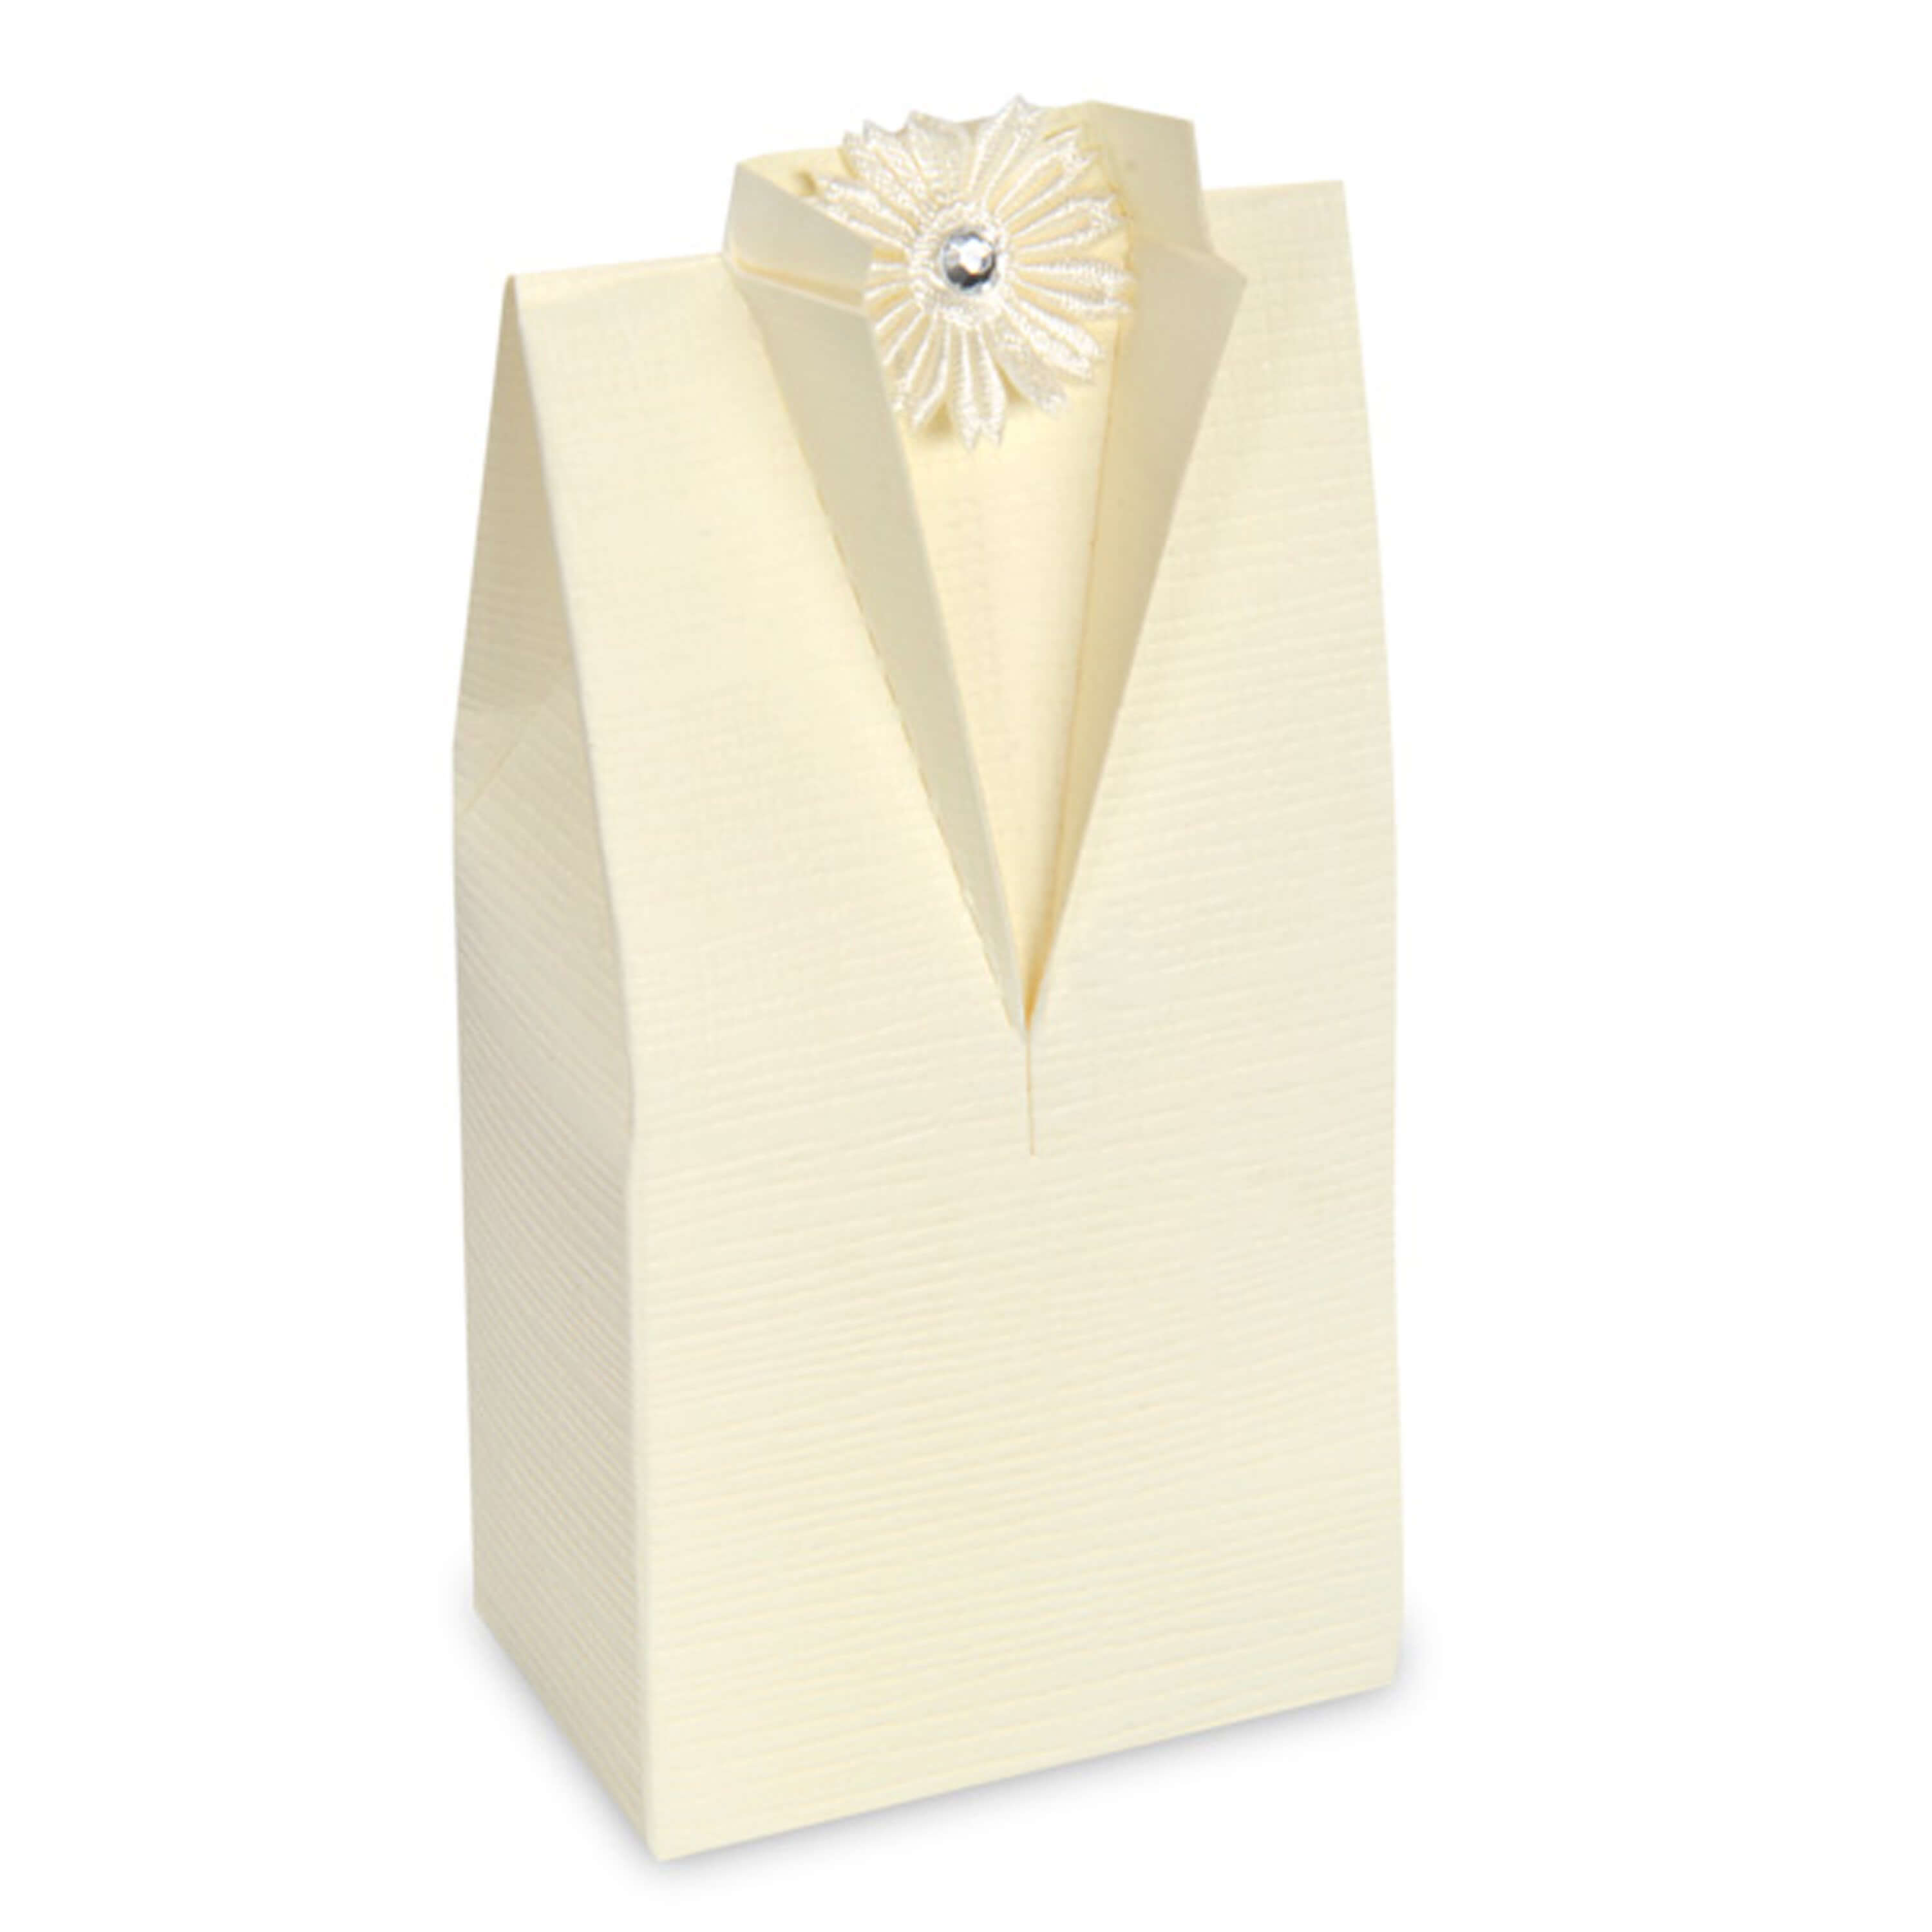 Ivory Silk* Tuxedo Favour Box (Pack of 10)